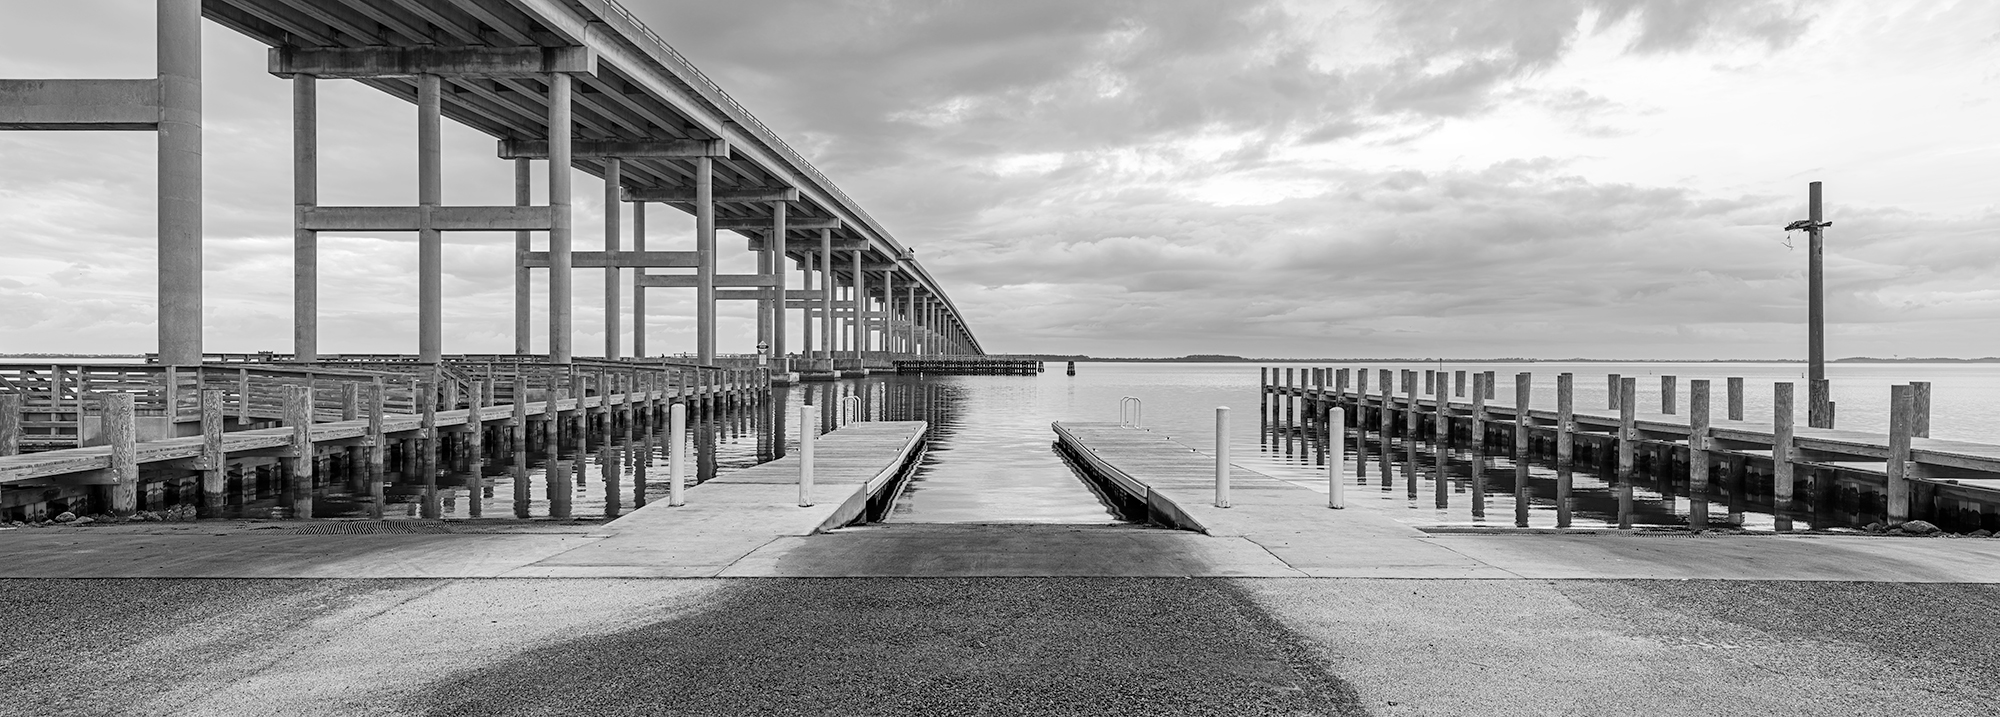 Boat Ramp, Washington Baum Bridge, Roanoke Island, NC.